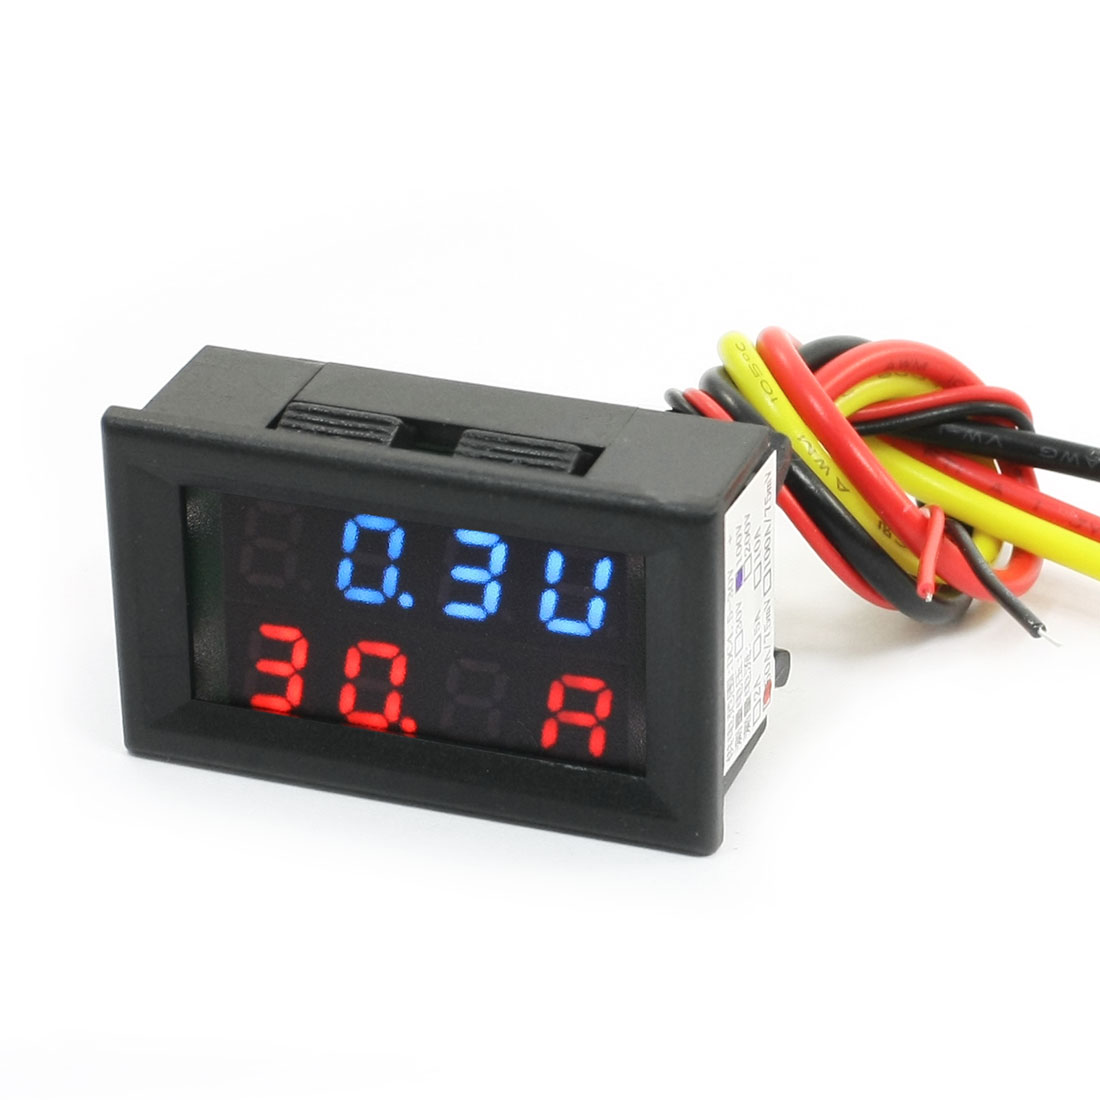 DC-Powered-0-100V-50A-75mV-Digital-Red-Blue-LED-Volt-Amp-Test-Panel-Meter